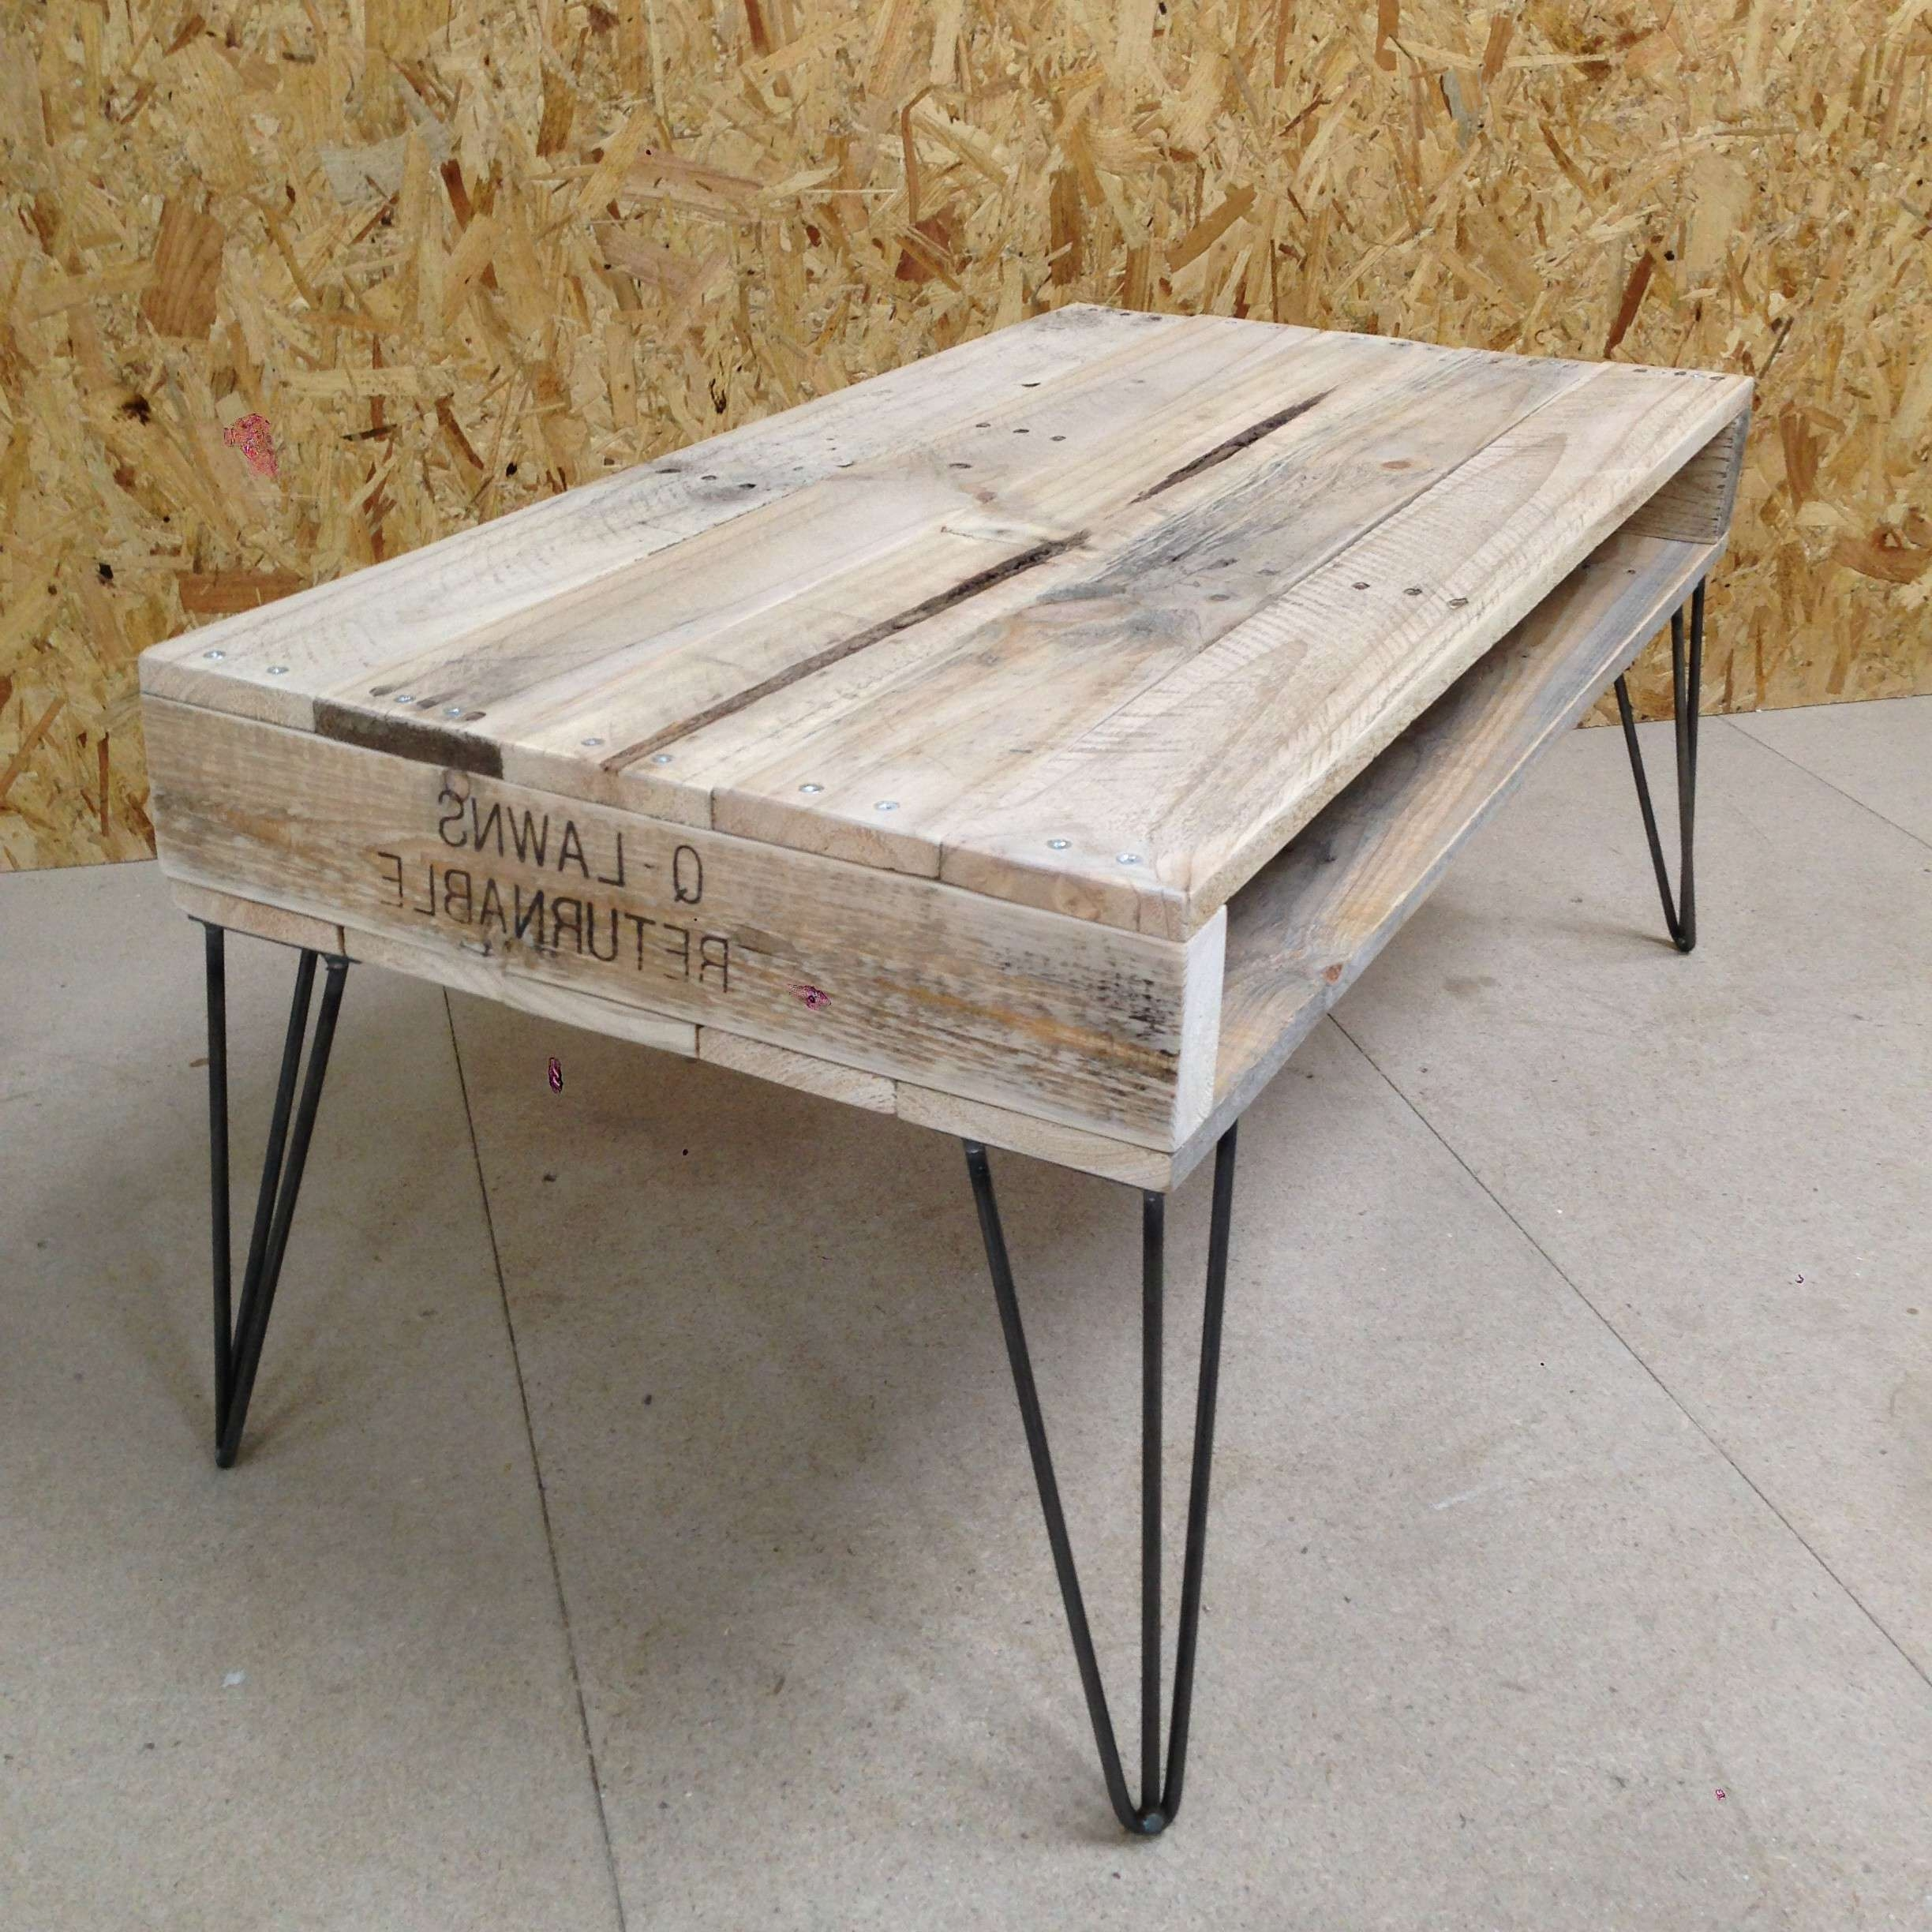 Hairpin Leg Coffee Table And Industrial Style Rectangle Unfinished Pertaining To Current Coffee Table Industrial Style (Gallery 16 of 20)